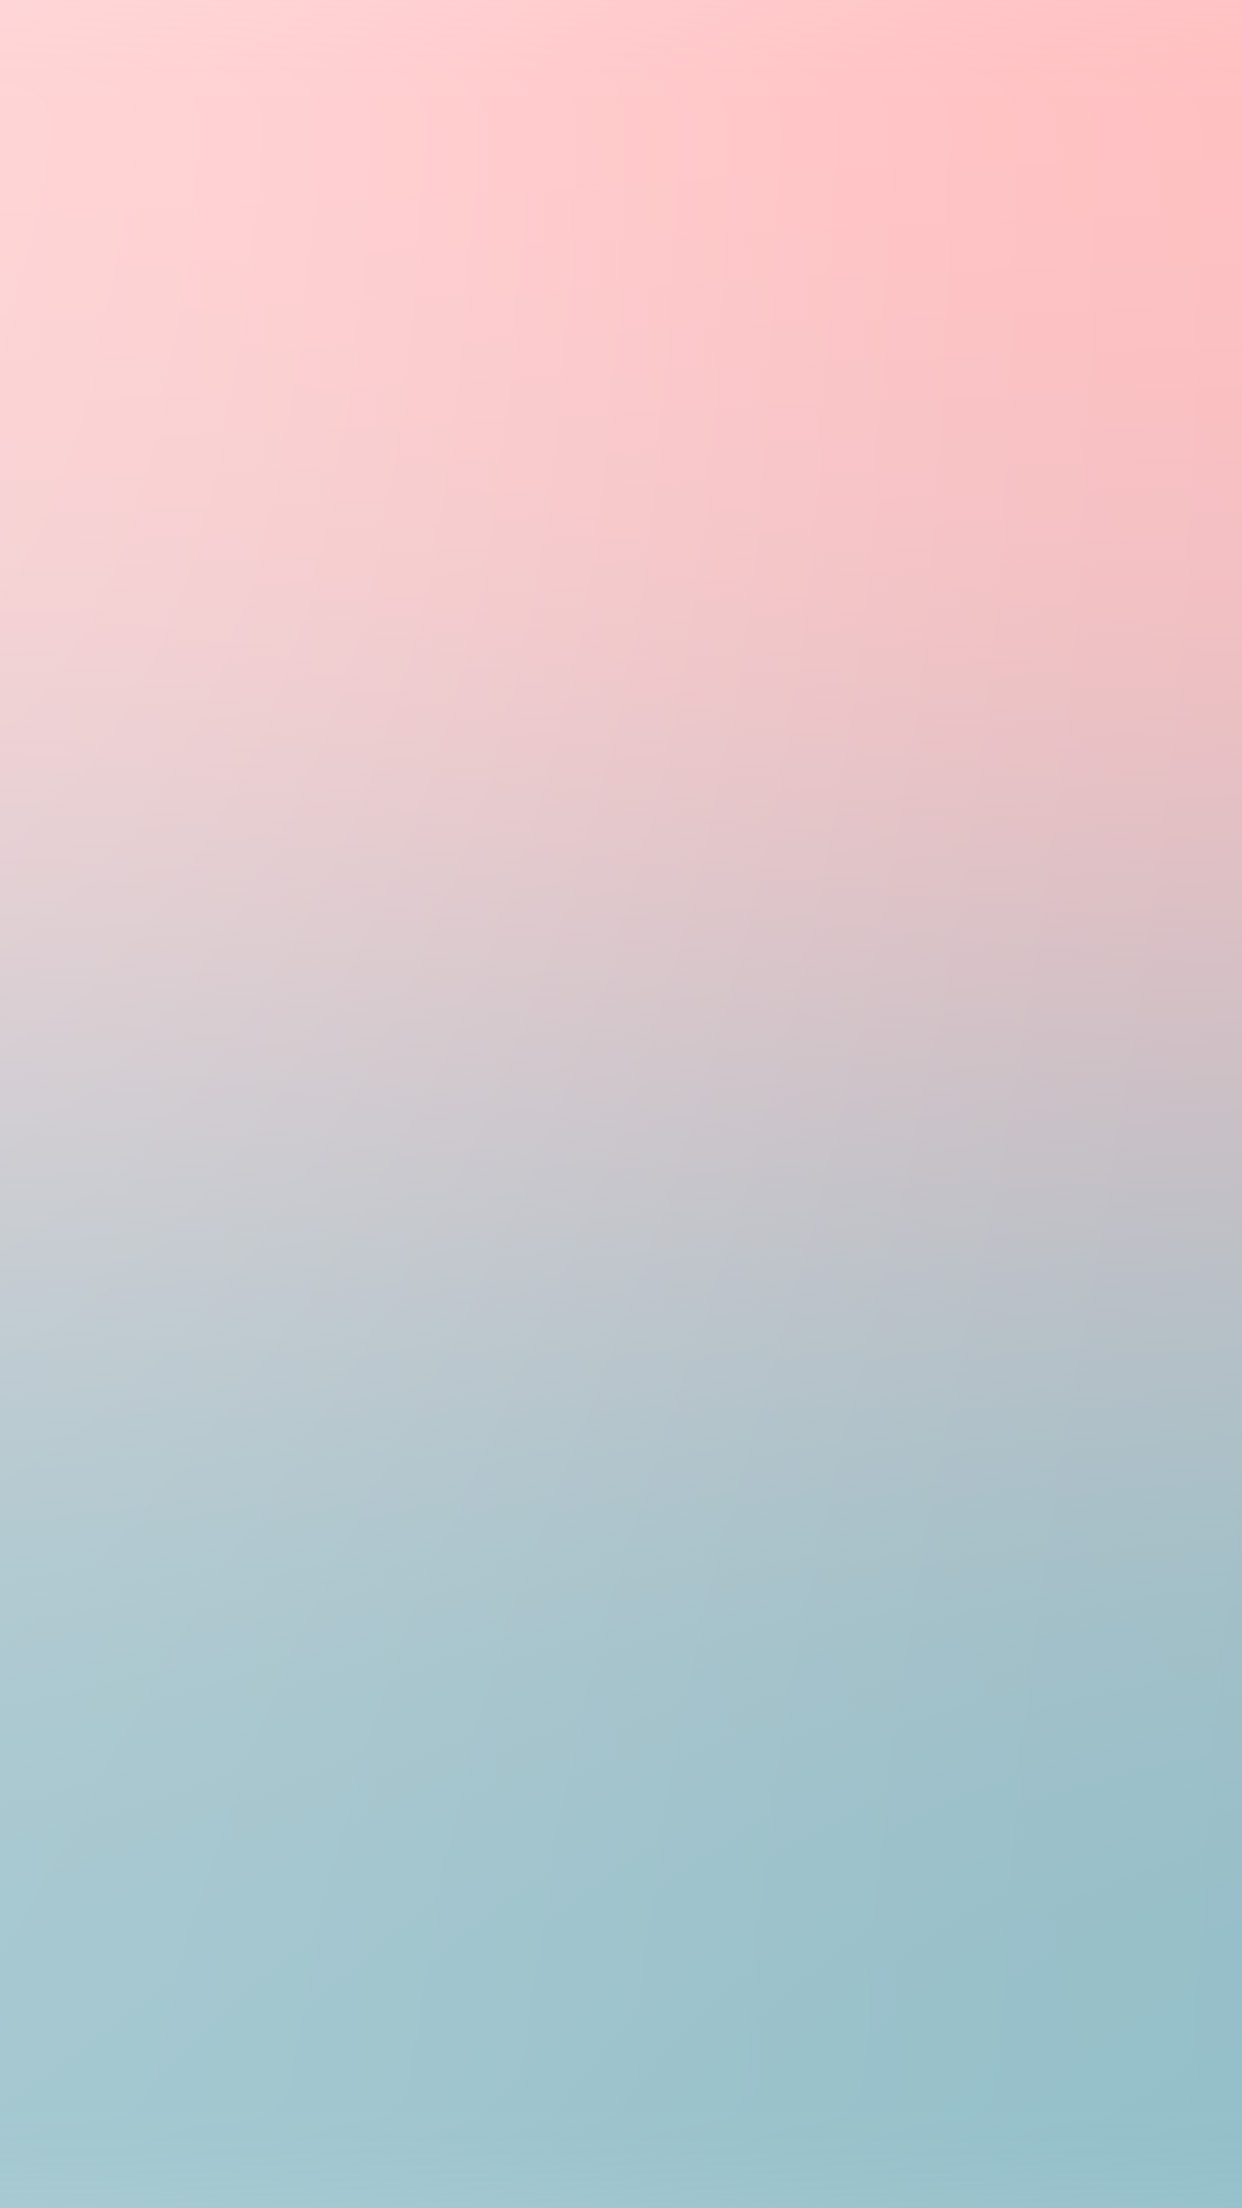 Iphone6papers Com Iphone 6 Wallpaper Sm07 Pink Blue Soft Pastel